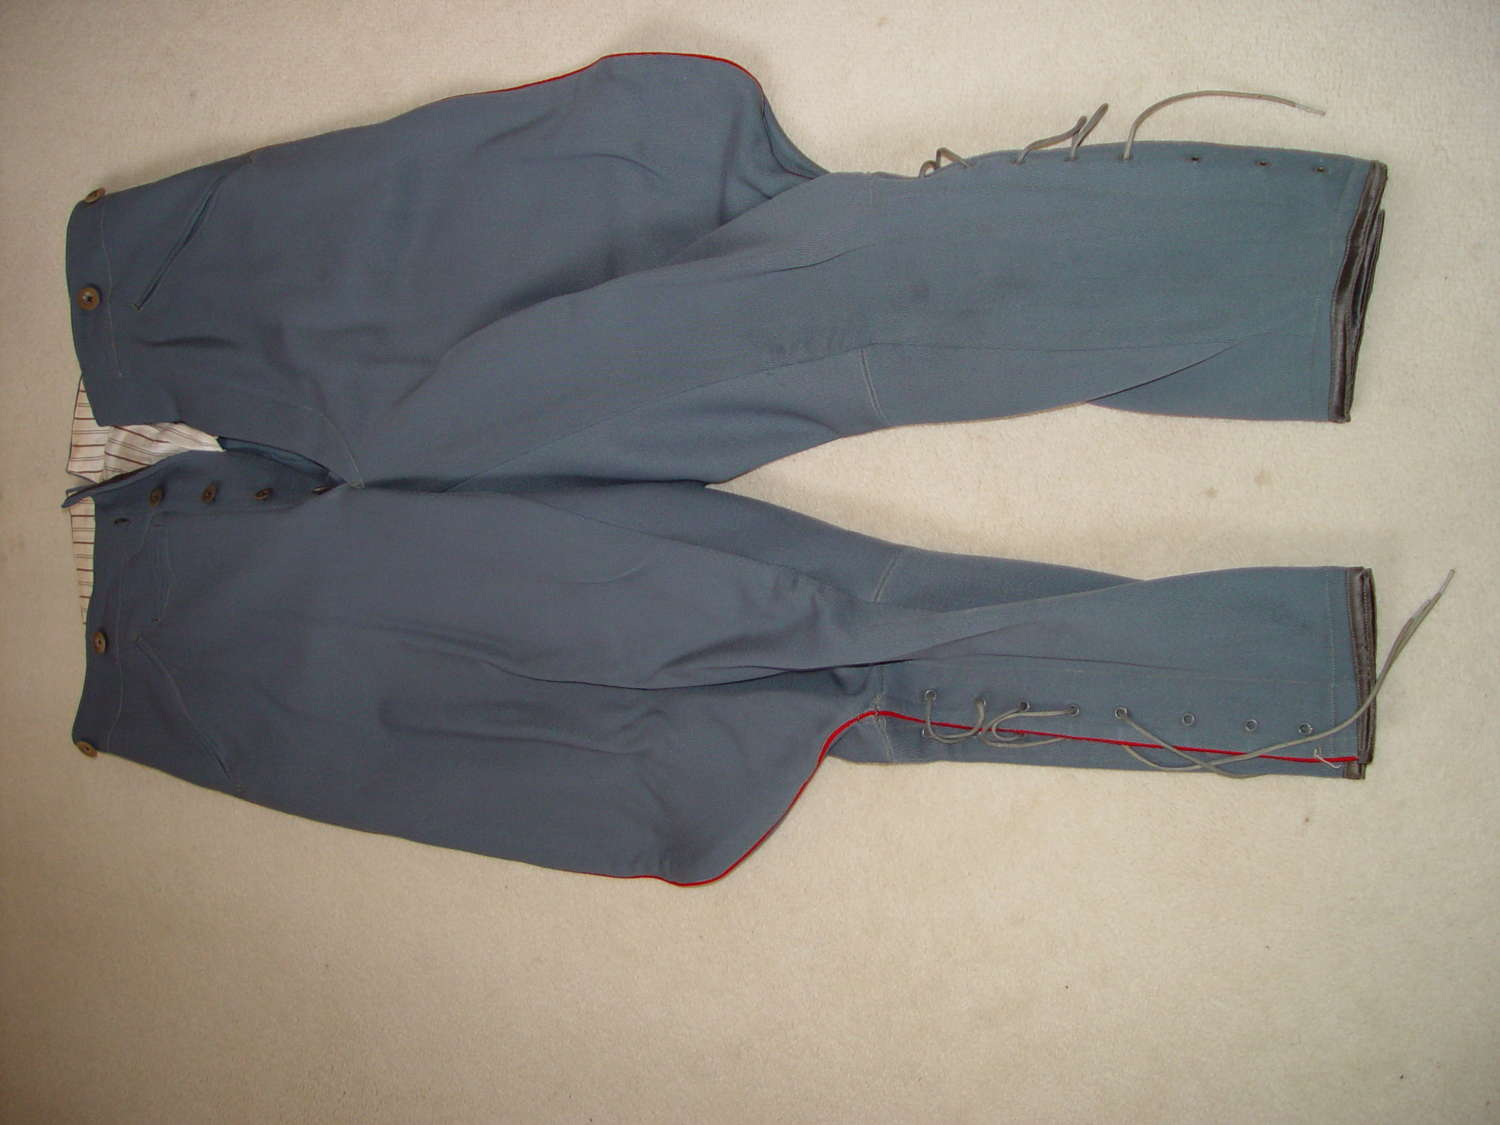 More pictures of the Dutch army officers tunic and trousers